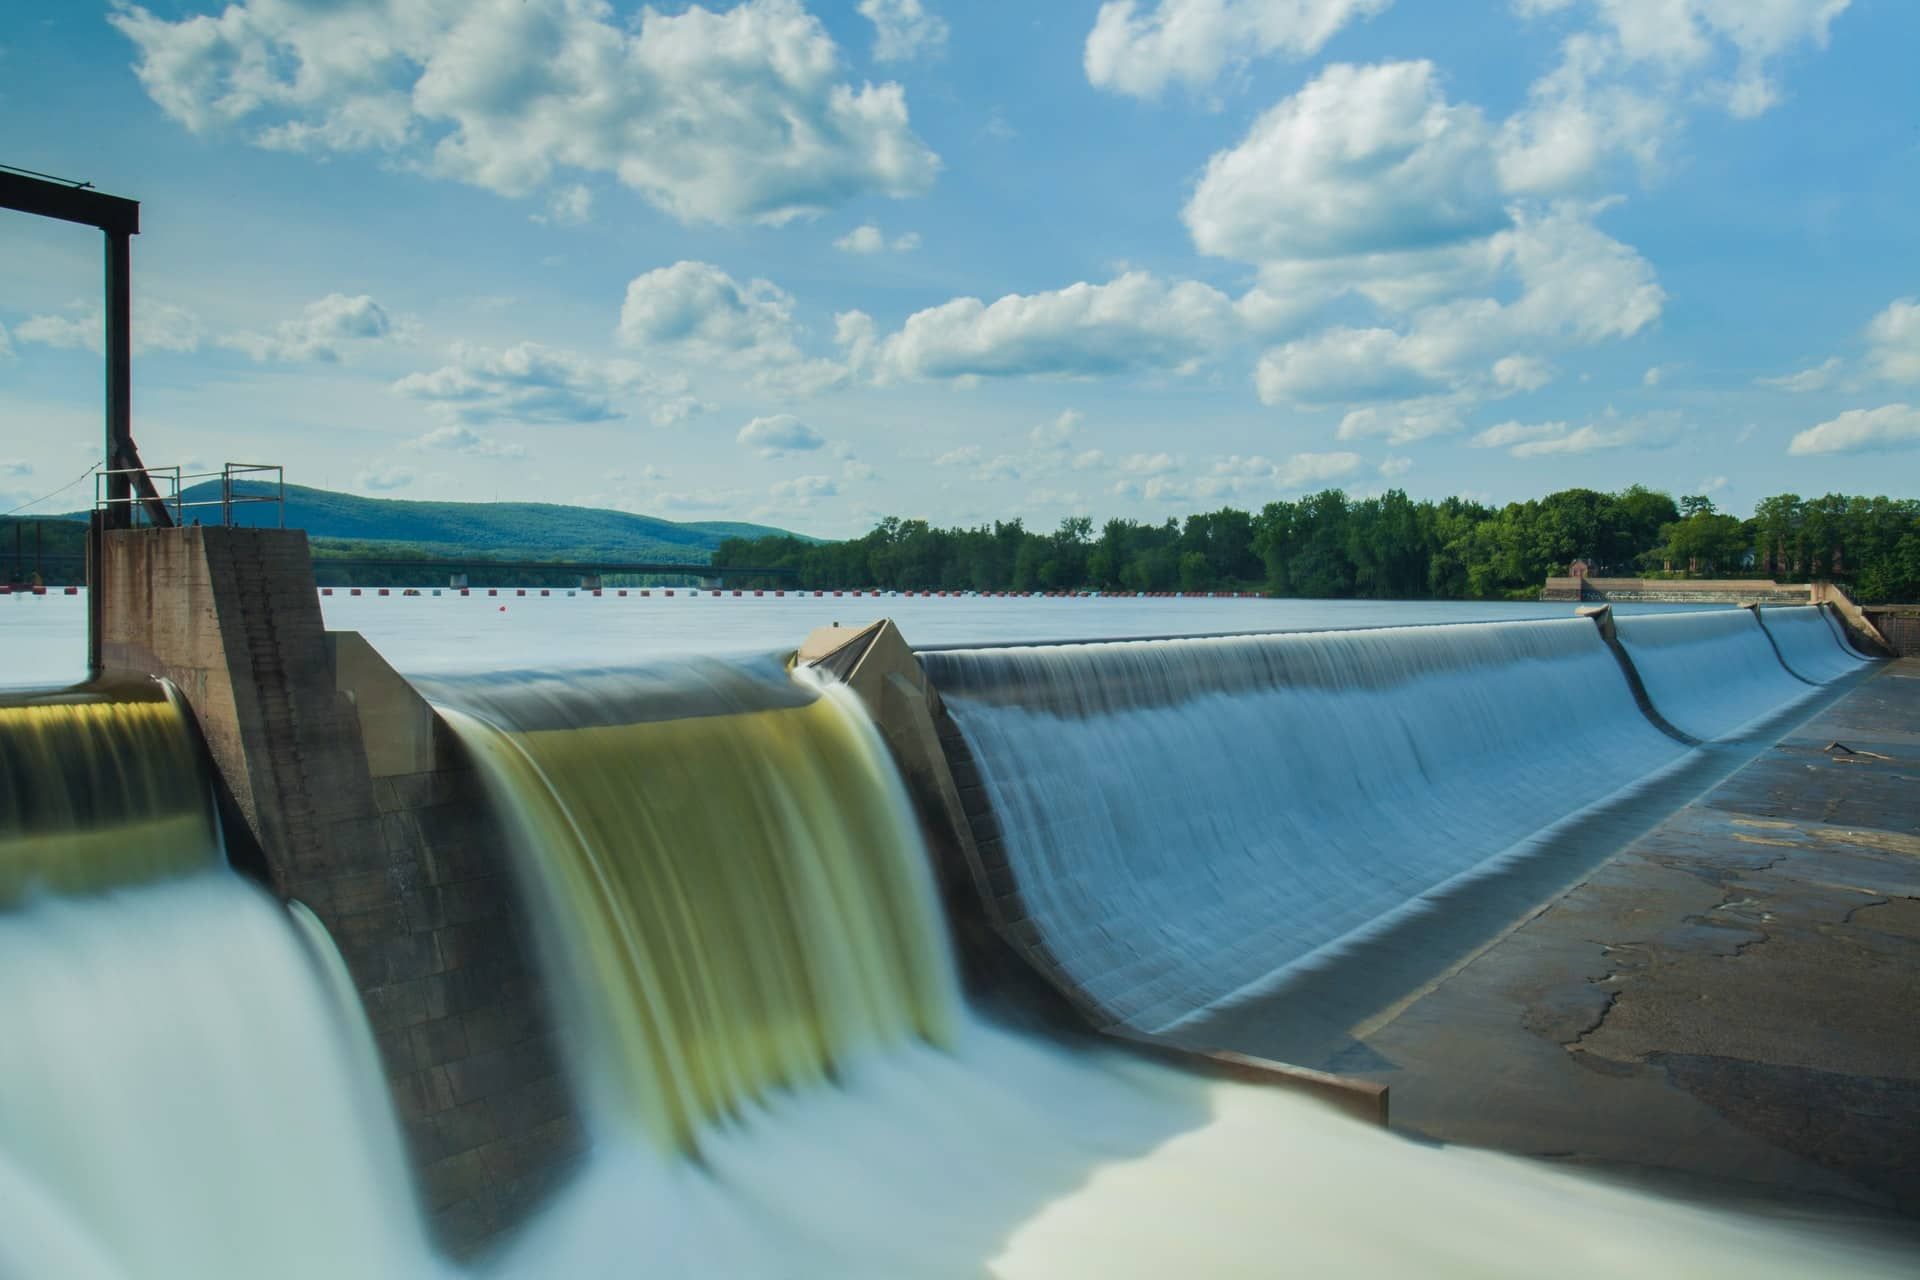 Pumped hydroelectric storage allows you to store energy by storing excess generation for later use